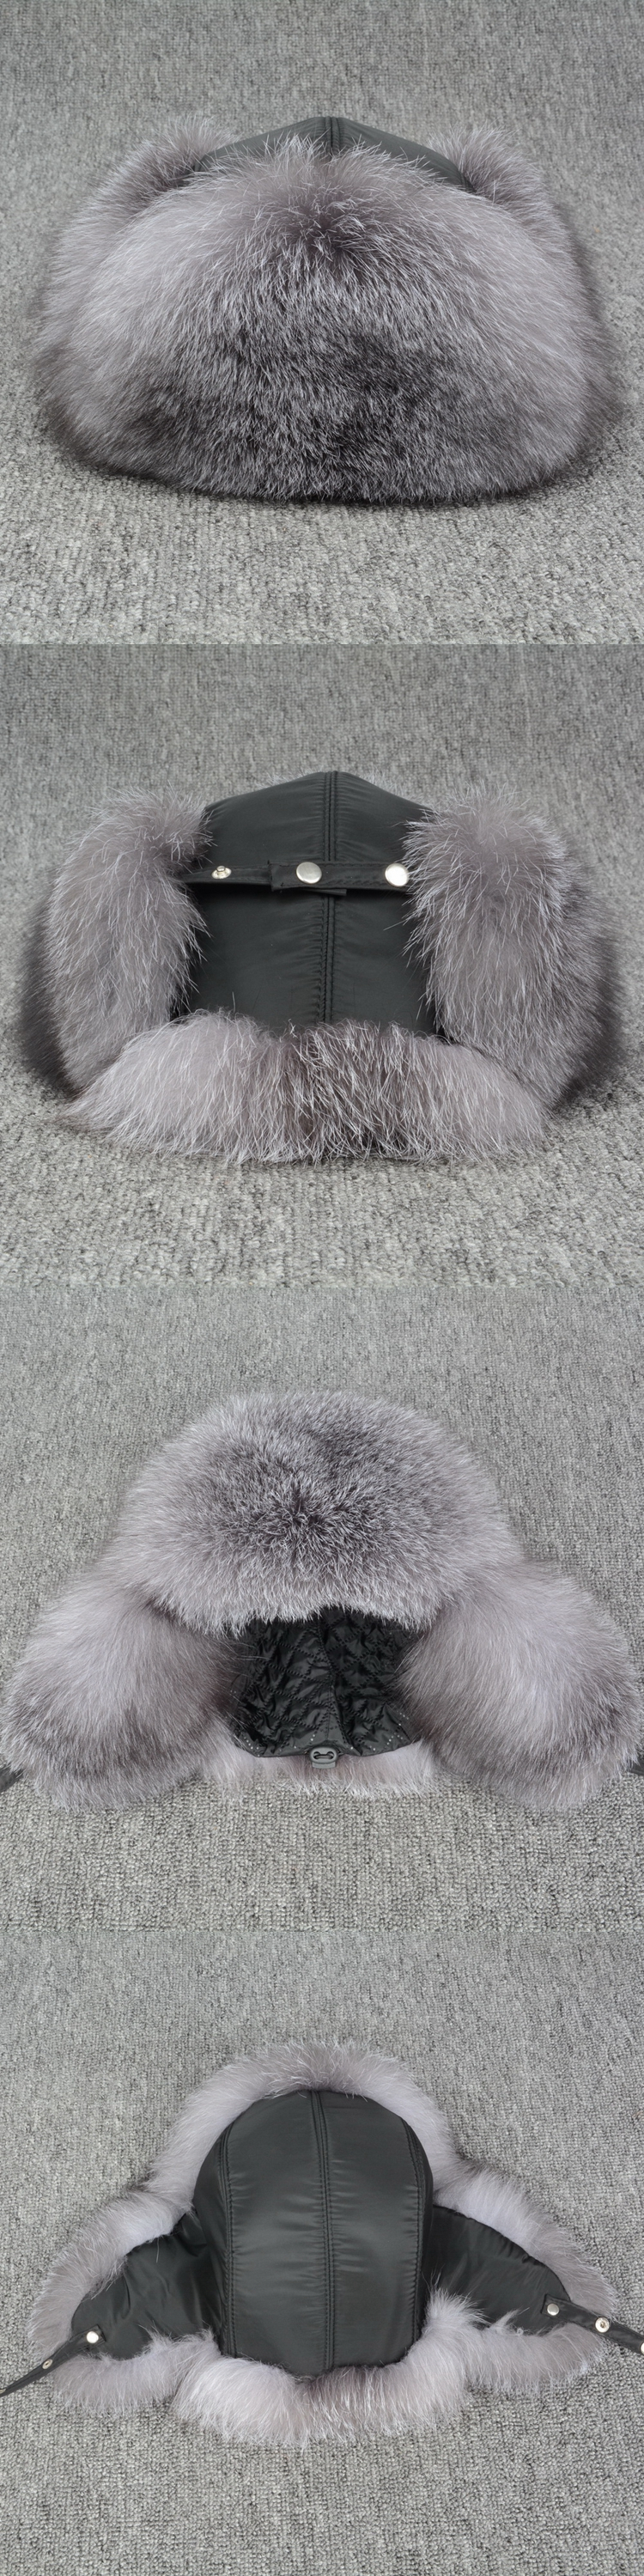 JKK FUR 2018 Real Silver Fox Bomber Fur Hats Thick Winter Warm Snow Caps With Earflap For Men & Women S3071